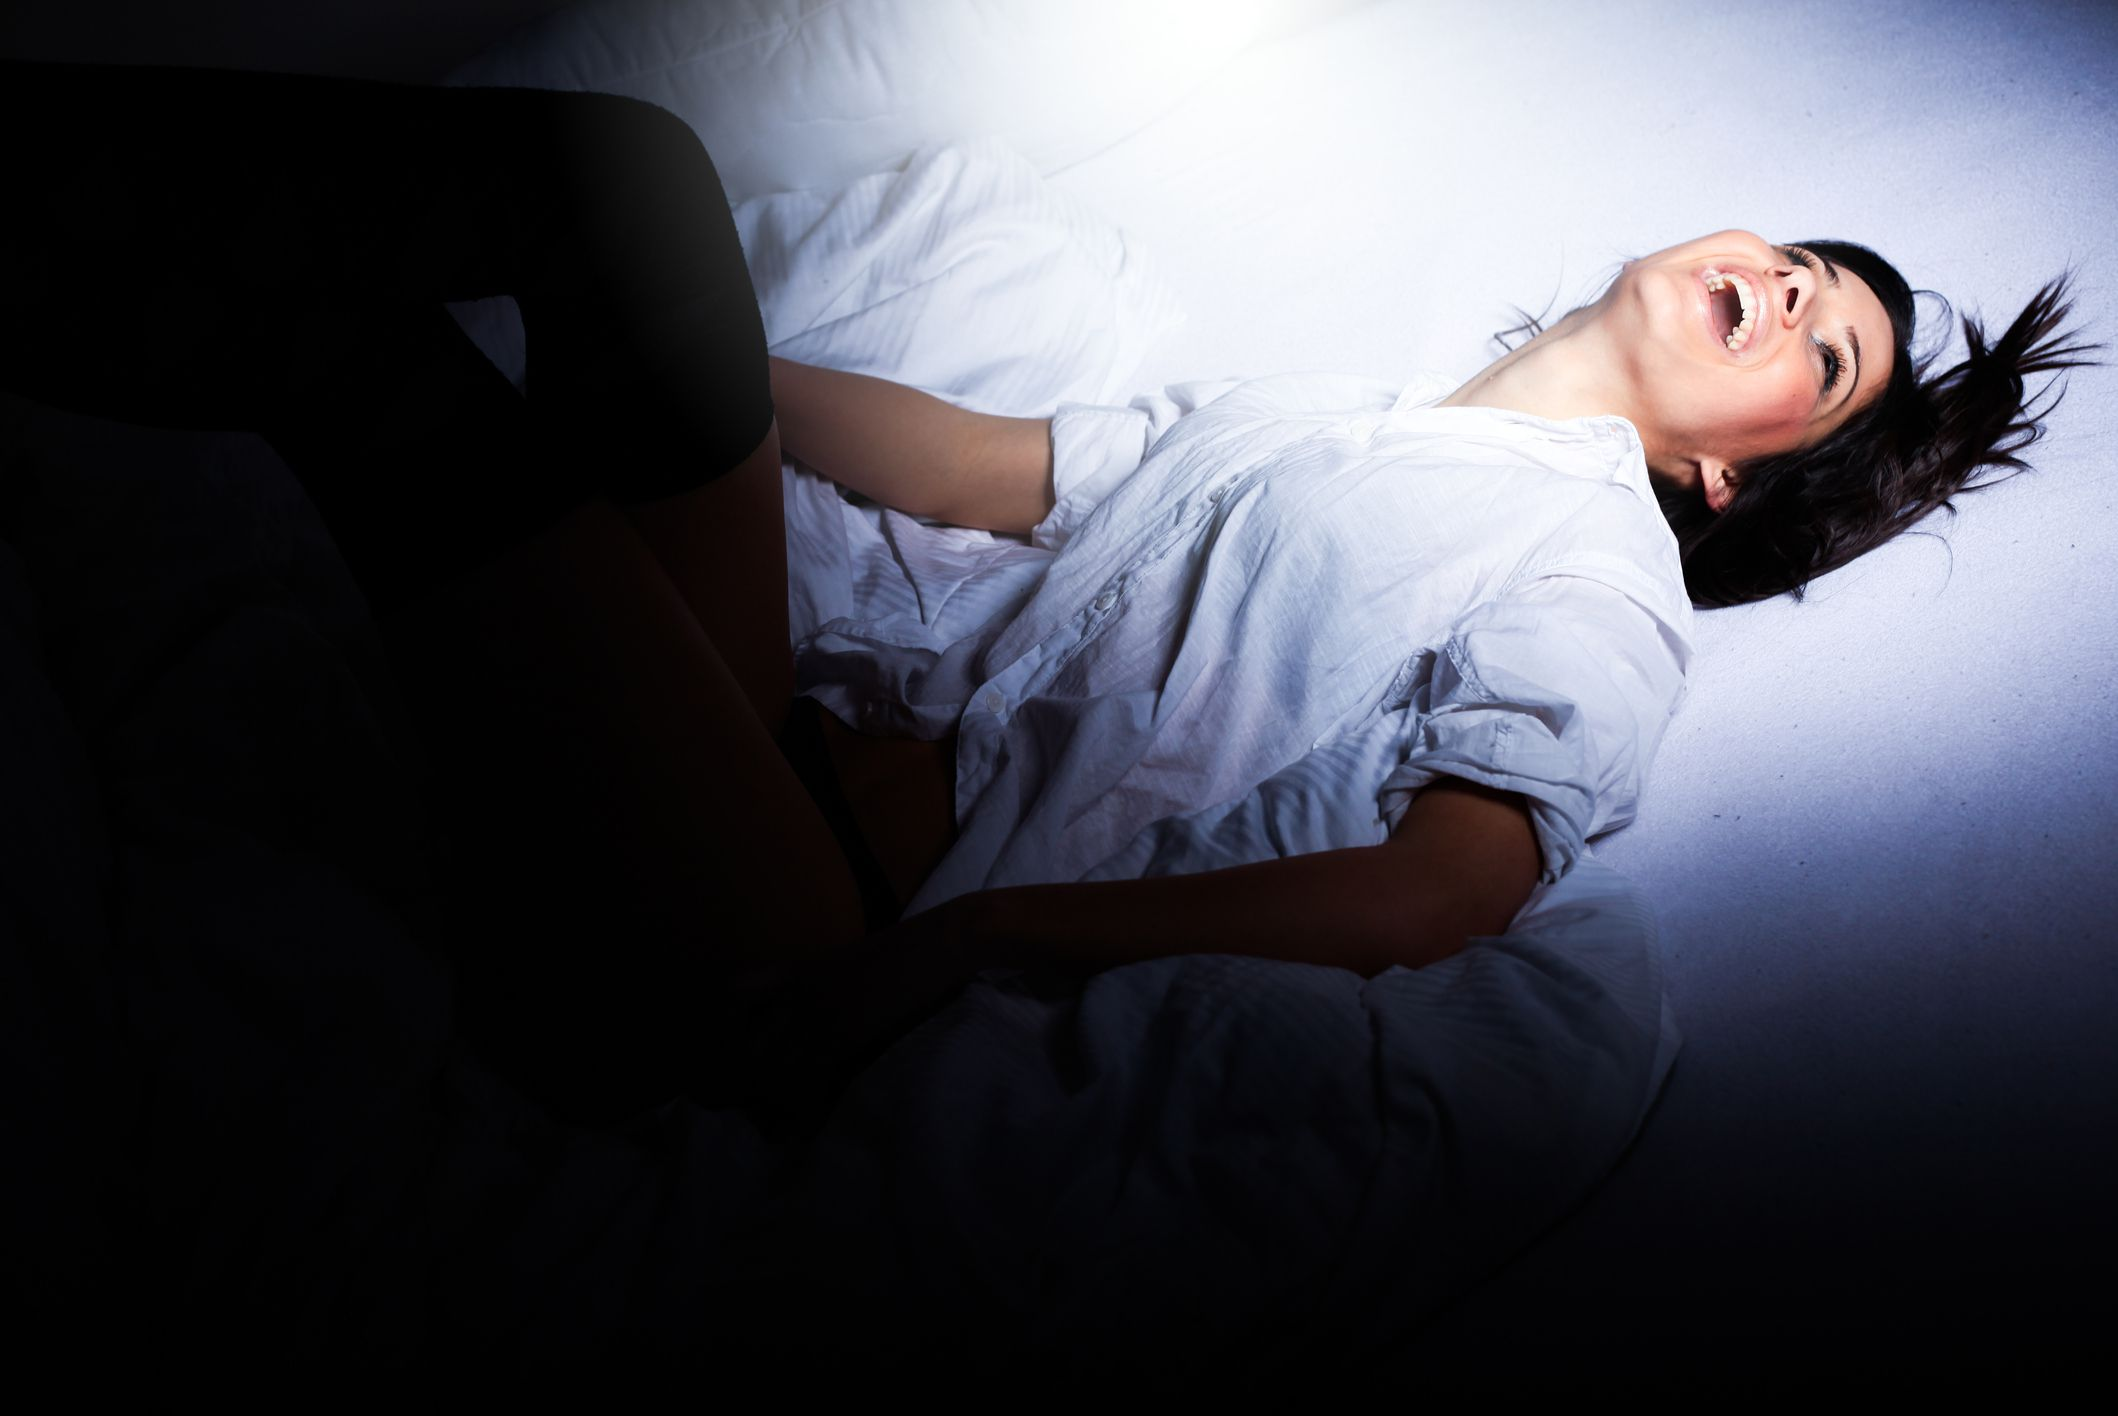 A woman lays on a bed smiling with her head back.